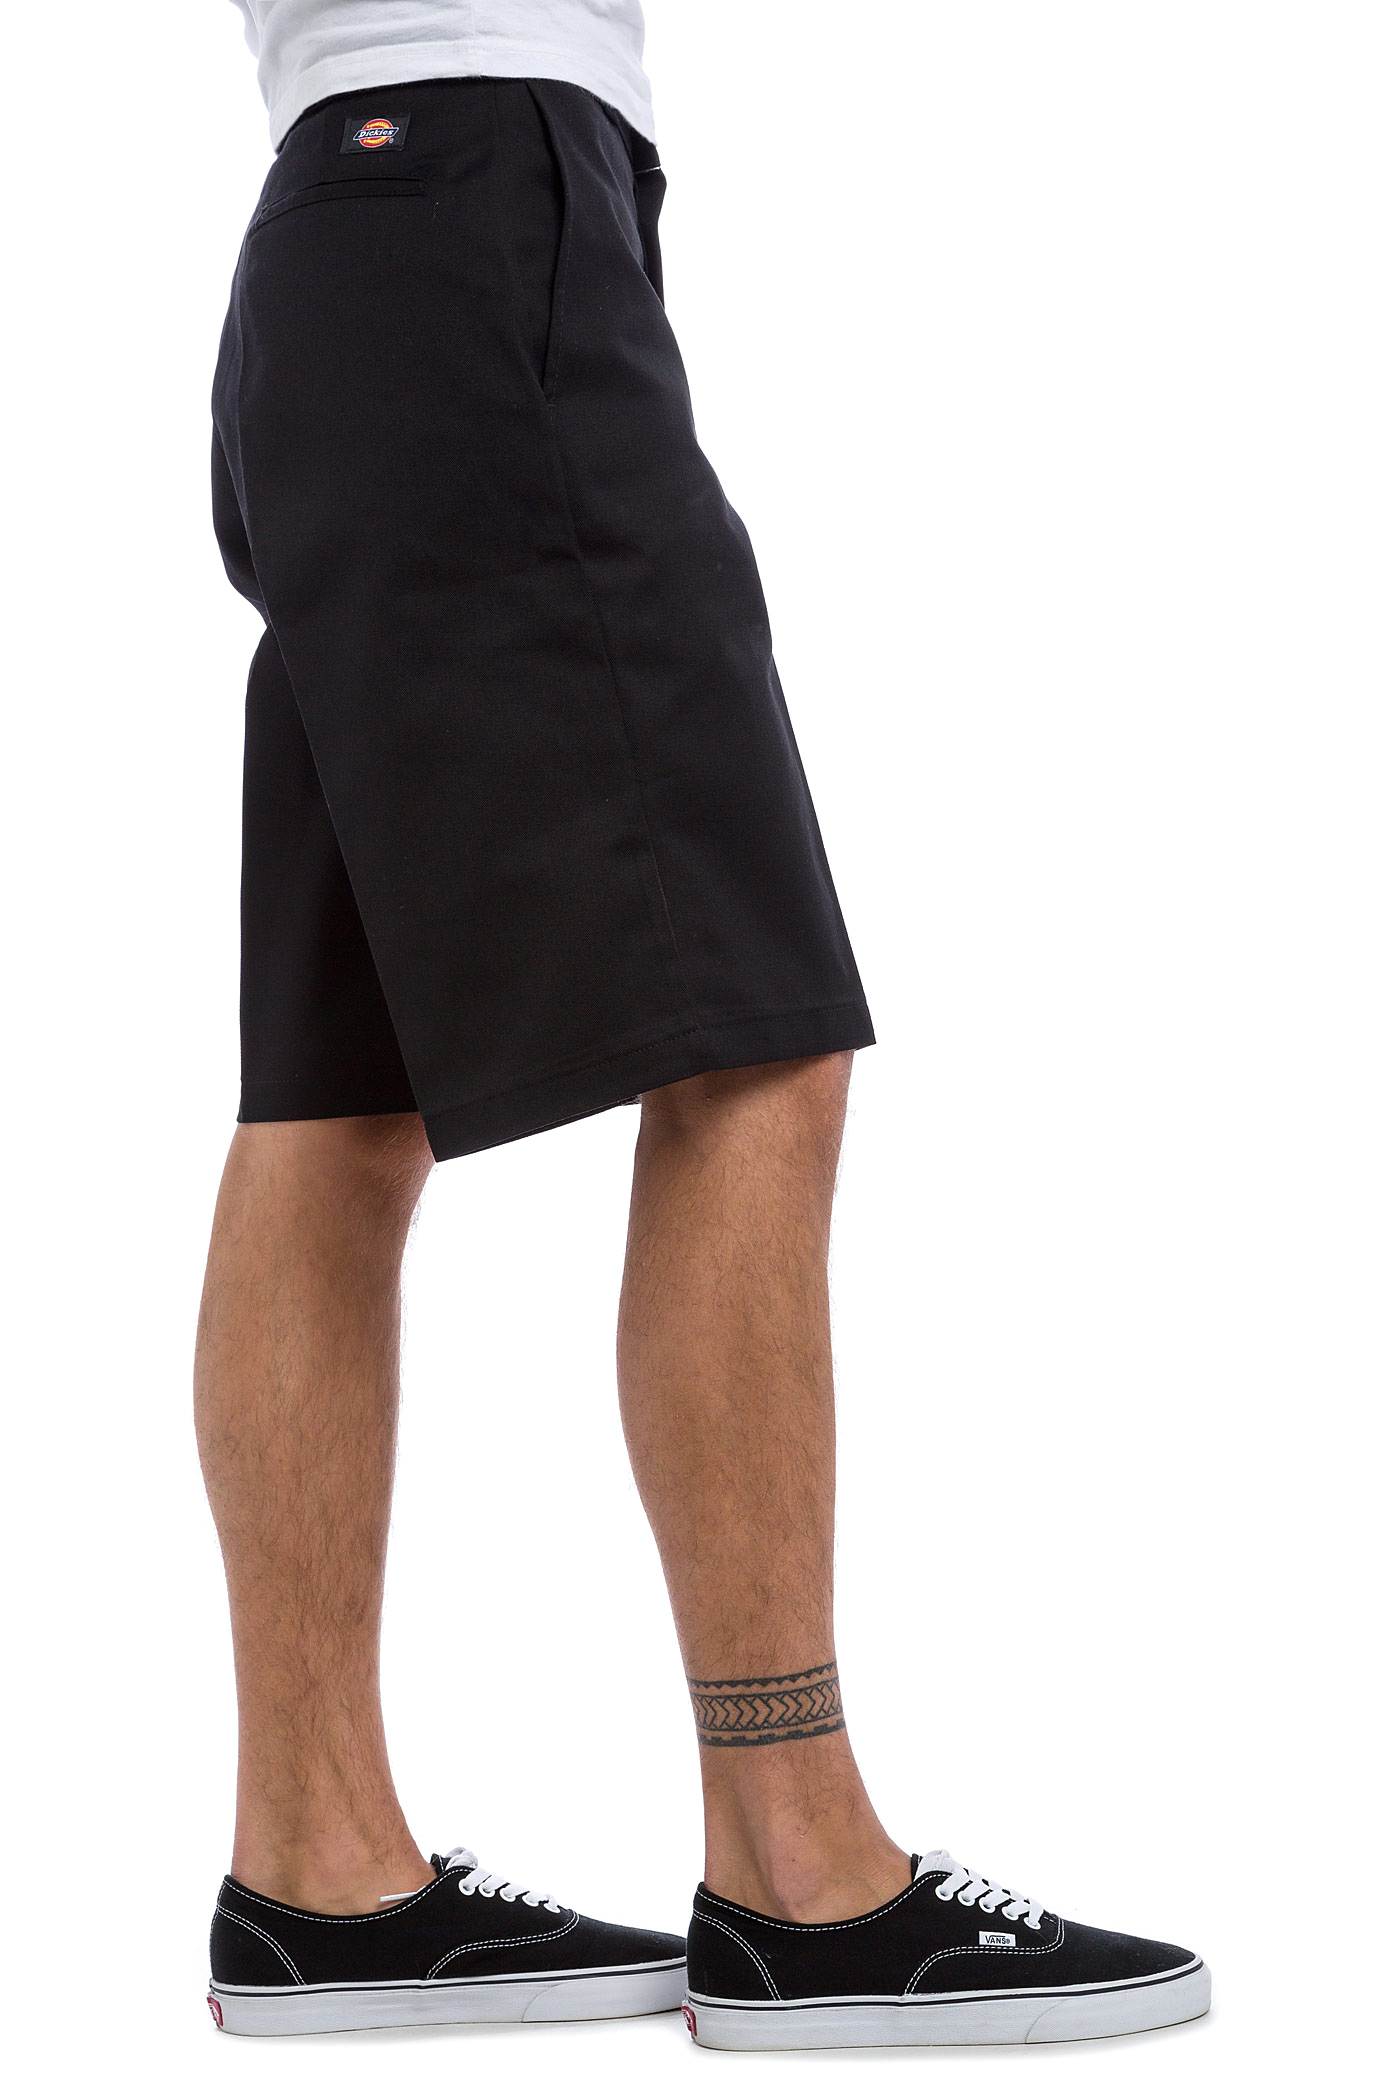 dickies o dog work shorts black buy at skatedeluxe. Black Bedroom Furniture Sets. Home Design Ideas